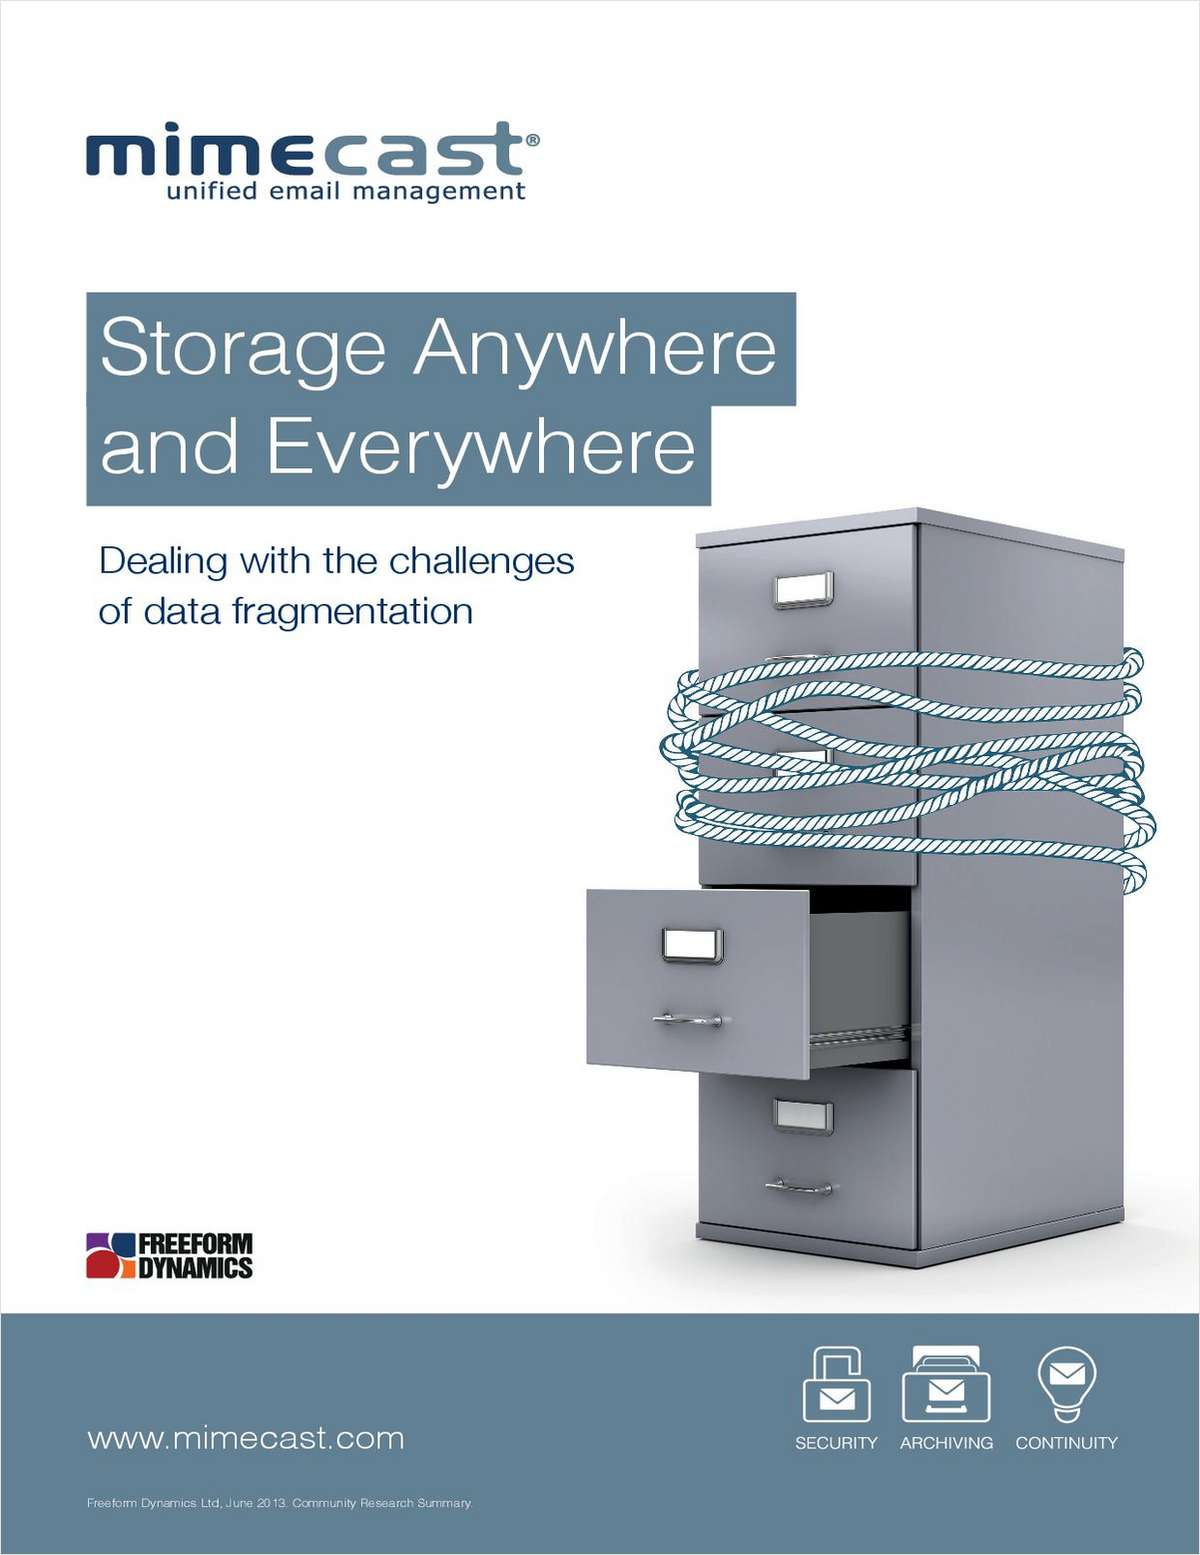 Storage Anywhere and Everywhere: Dealing with the Challenges of Data Fragmentation